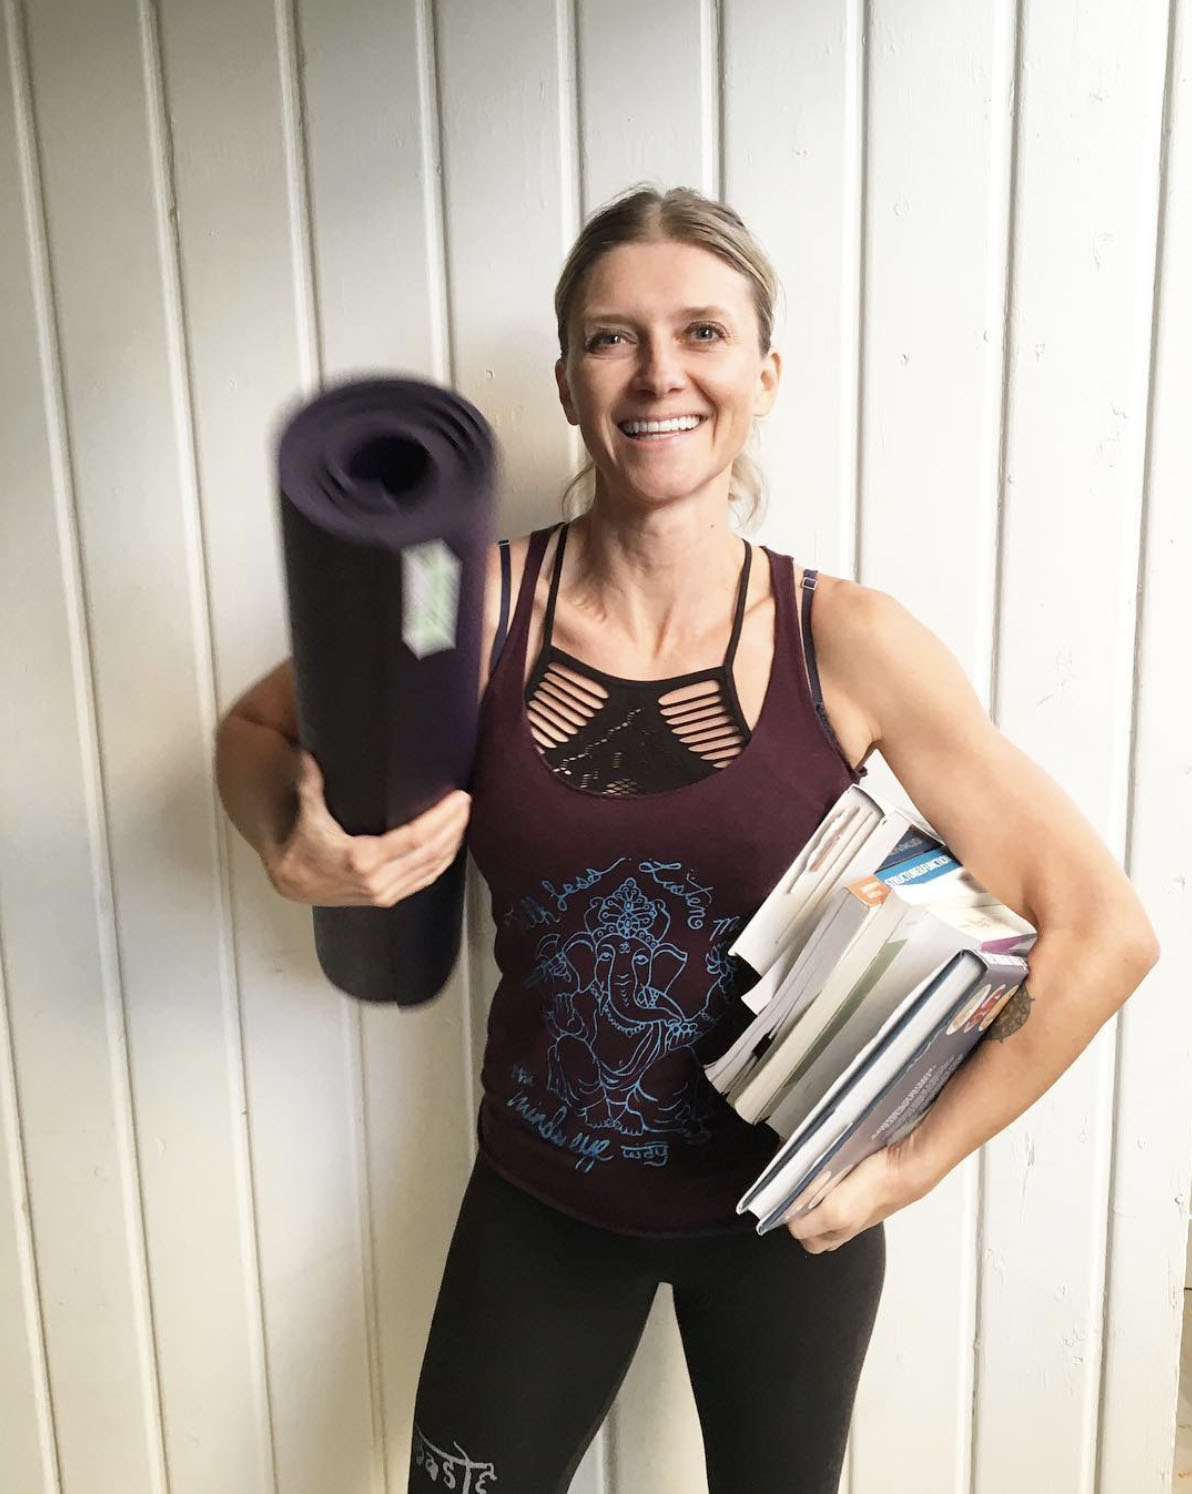 OUR FAVORITE ANATOMY NERD @MYDHARMA_YOGA IN NAMASTE LEGGINGS AND TALK LESS TANK